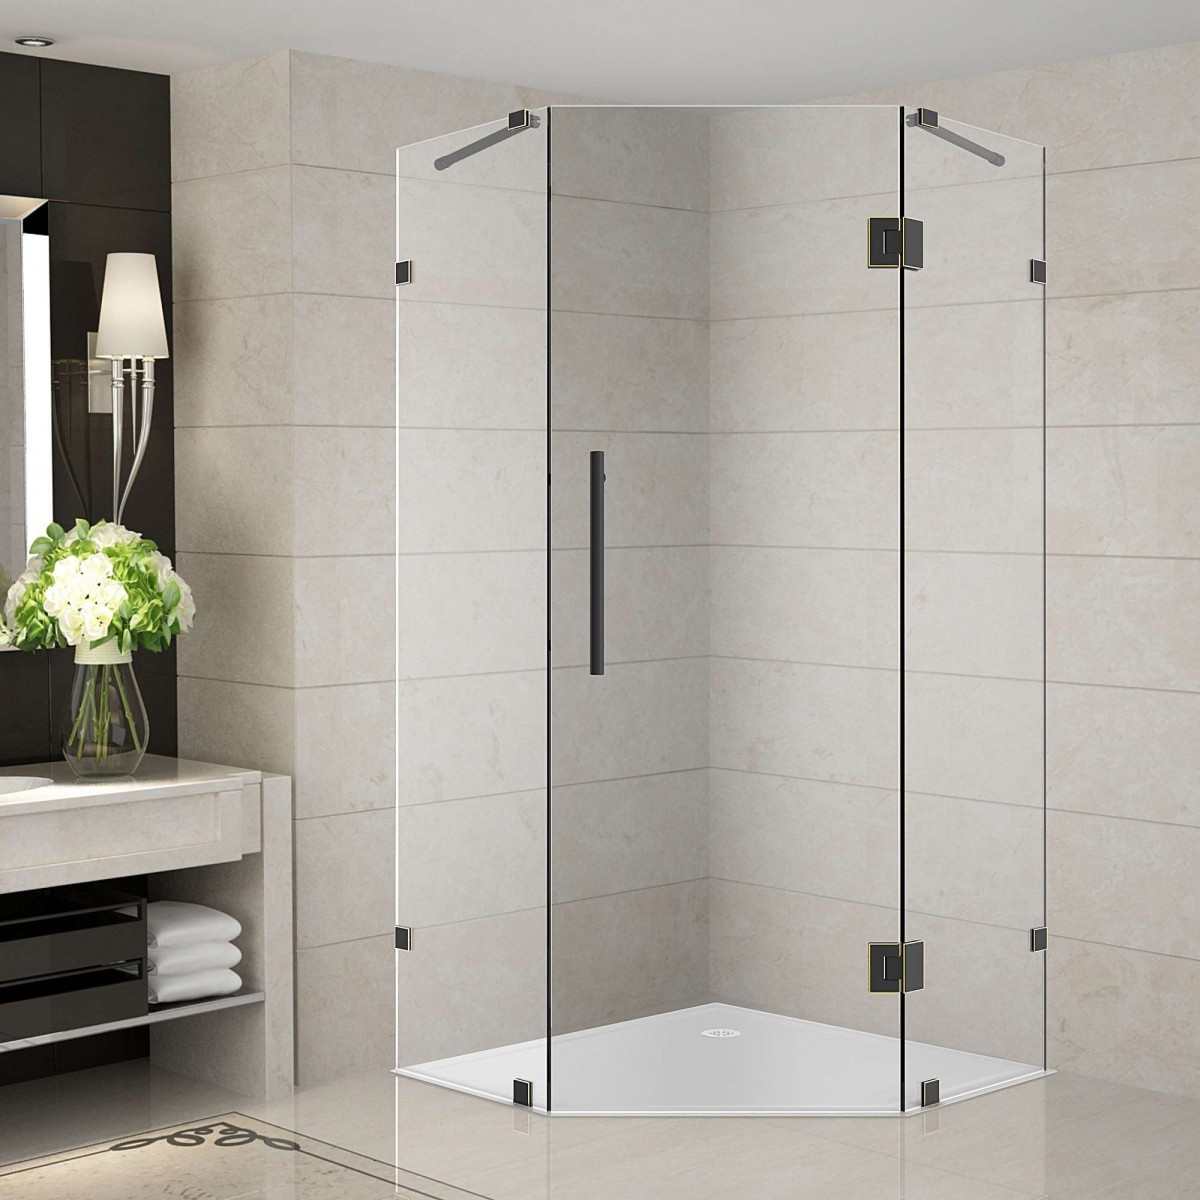 36 neo angle shower enclosure hanging paper lights